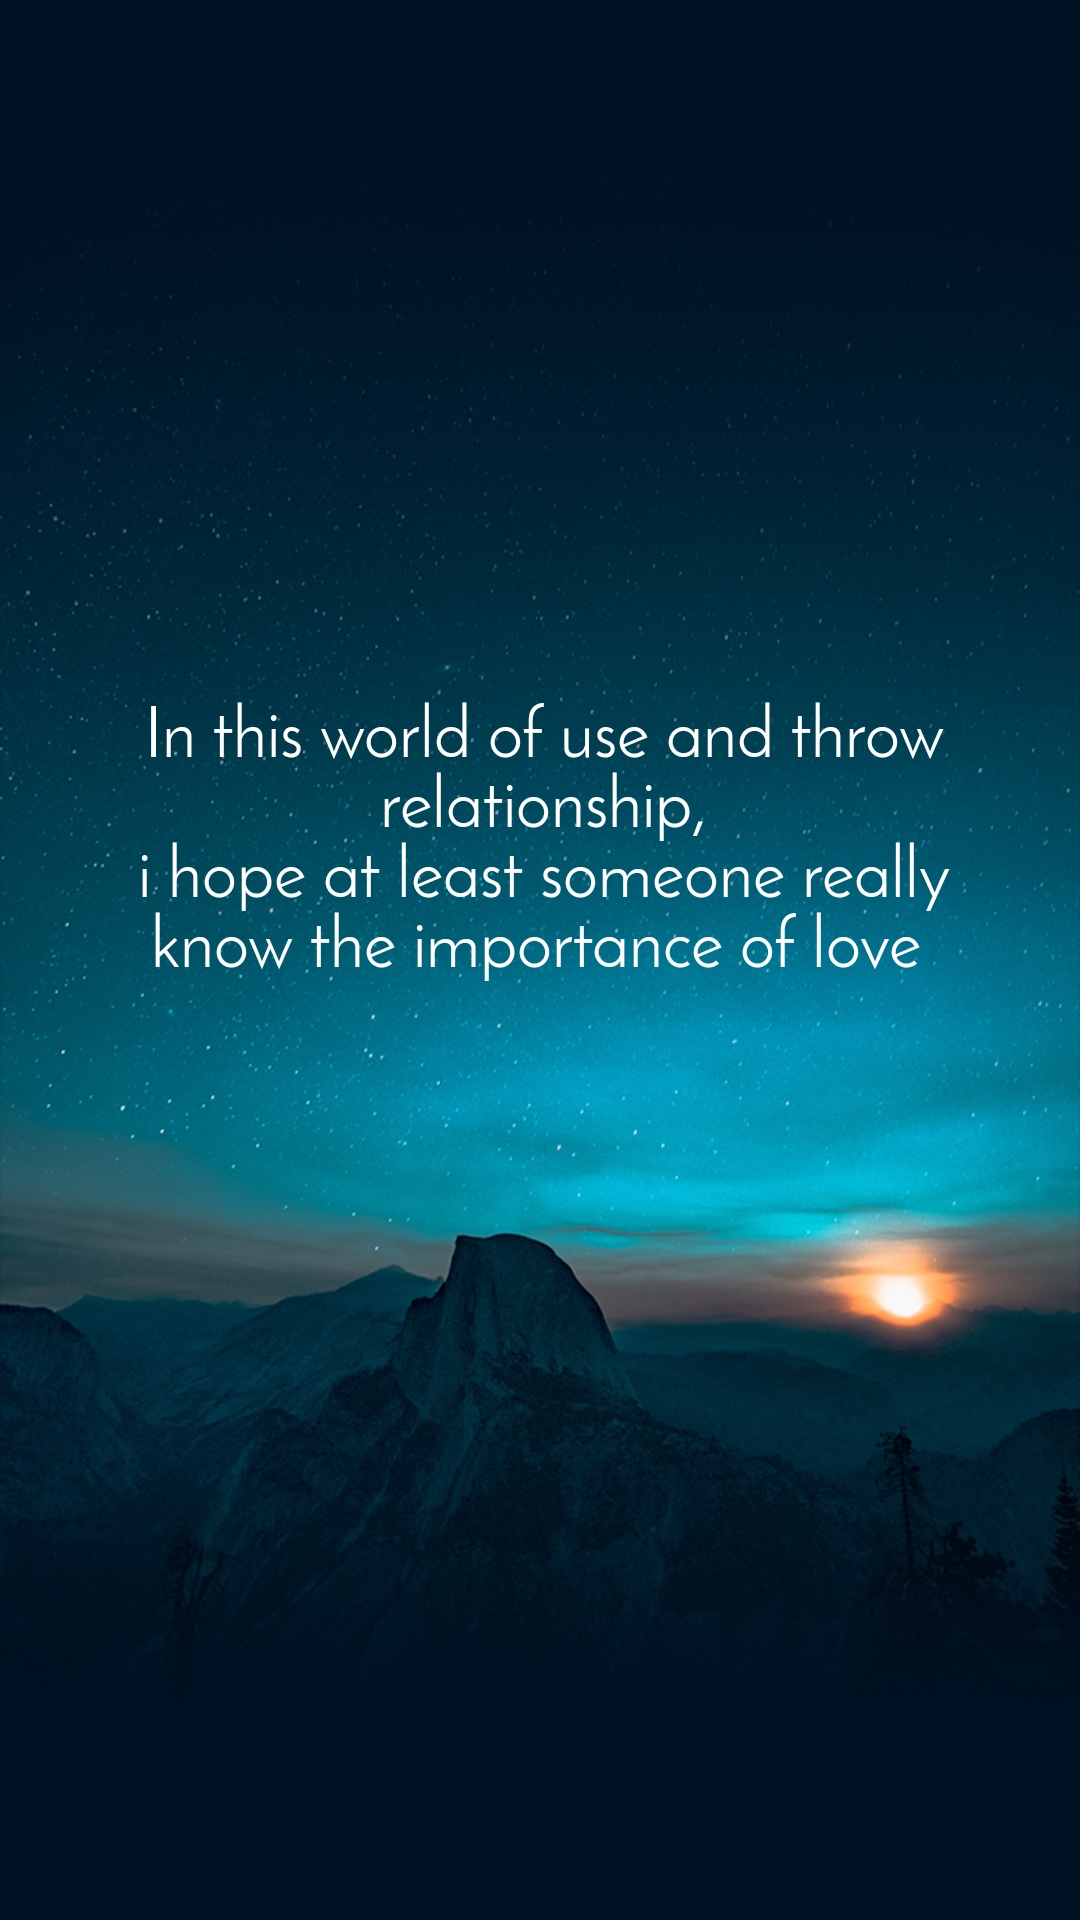 In this world of use and throw relationship, i hope at least someone really know the importance of love